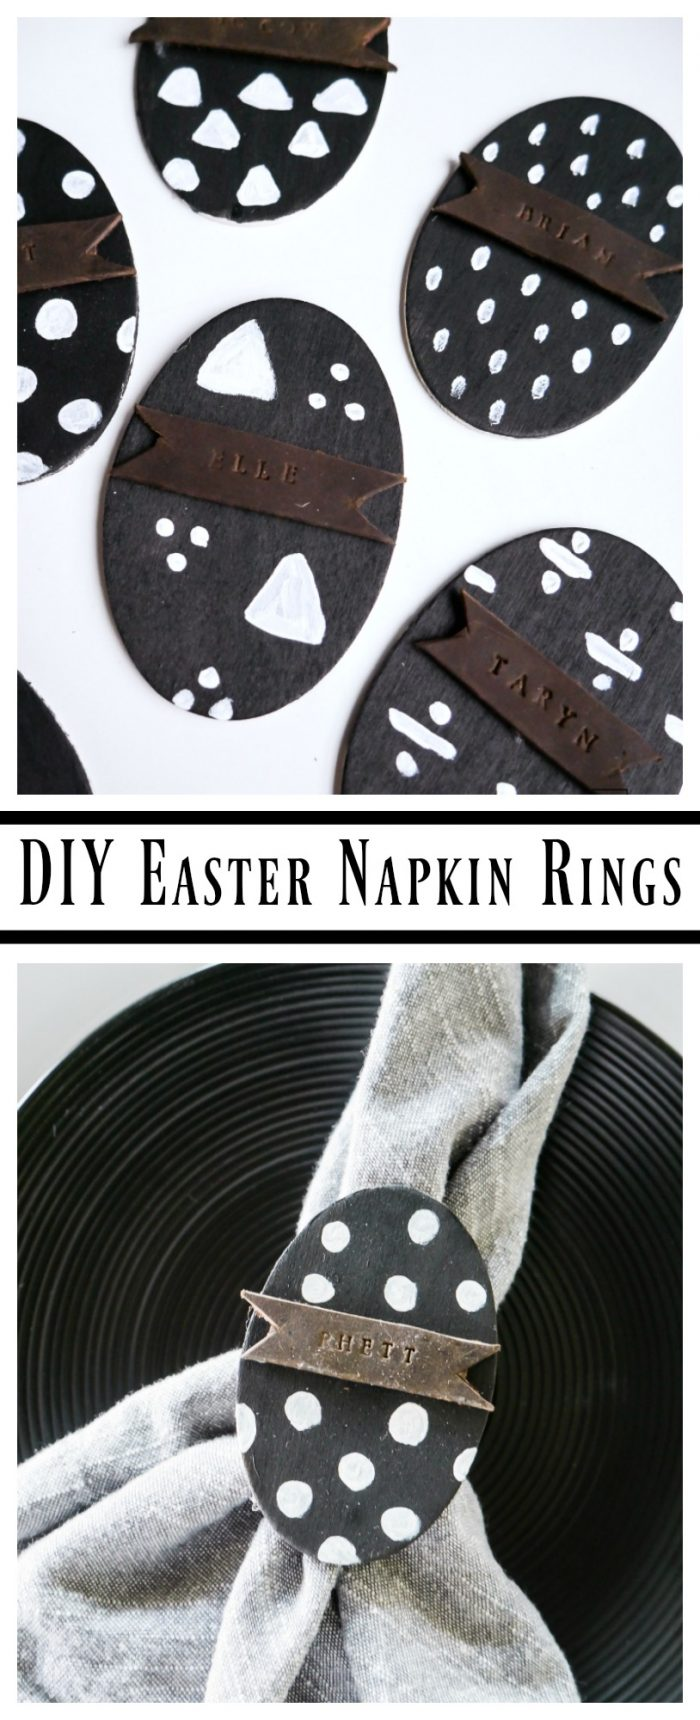 Add a little personalization to your Easter table with these DIY Easter Egg Napkin Rings ! A simple Easter craft that requires minimal time and skill.